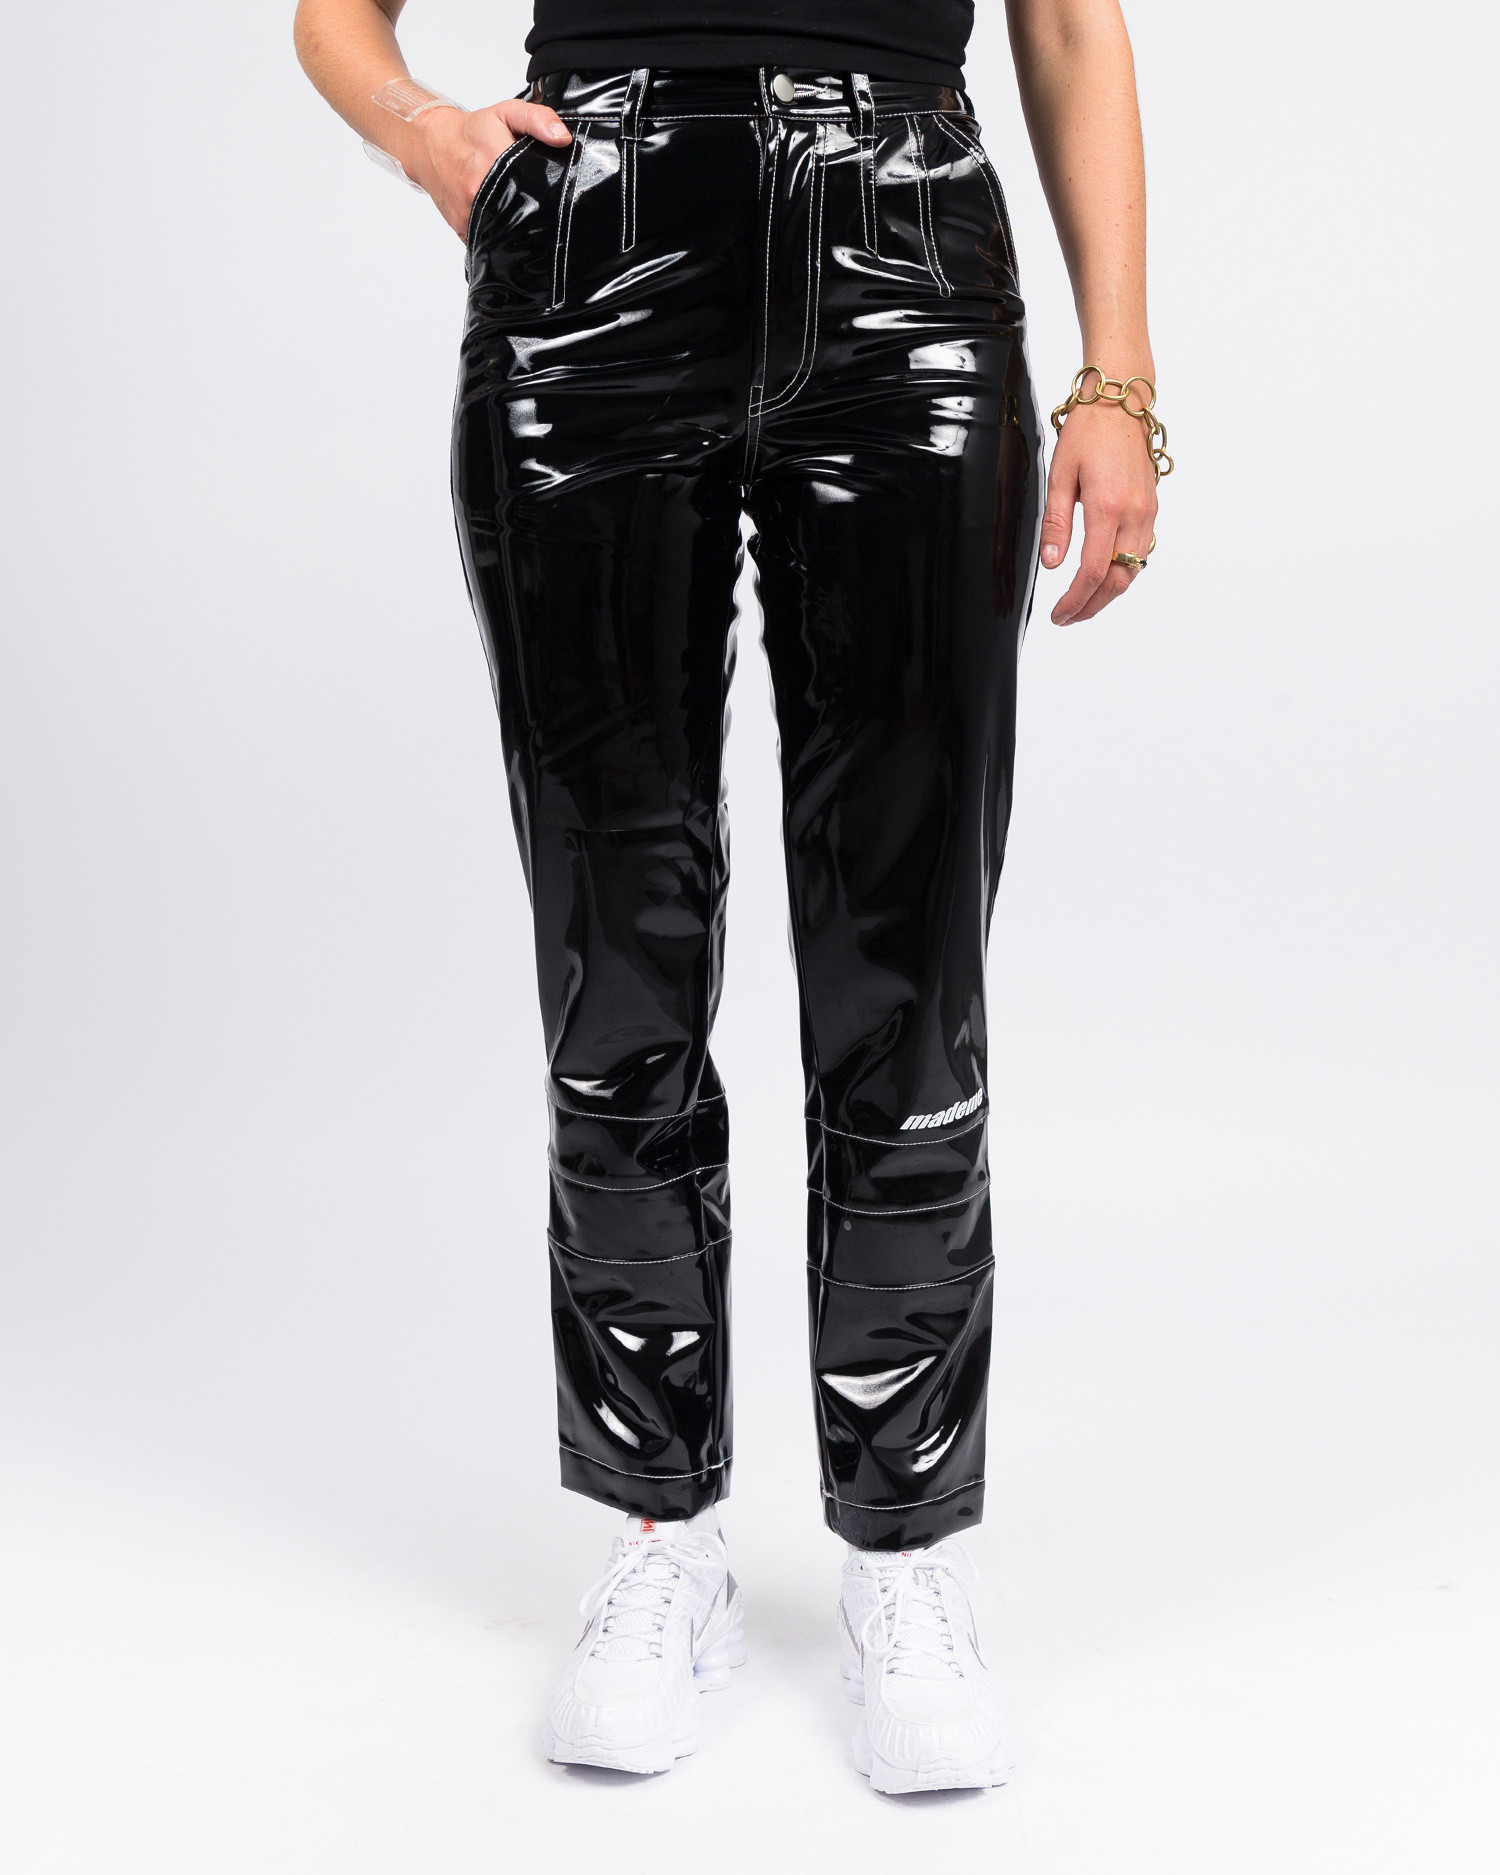 MadeMe Vinyl High Waisted Pant Black Patent